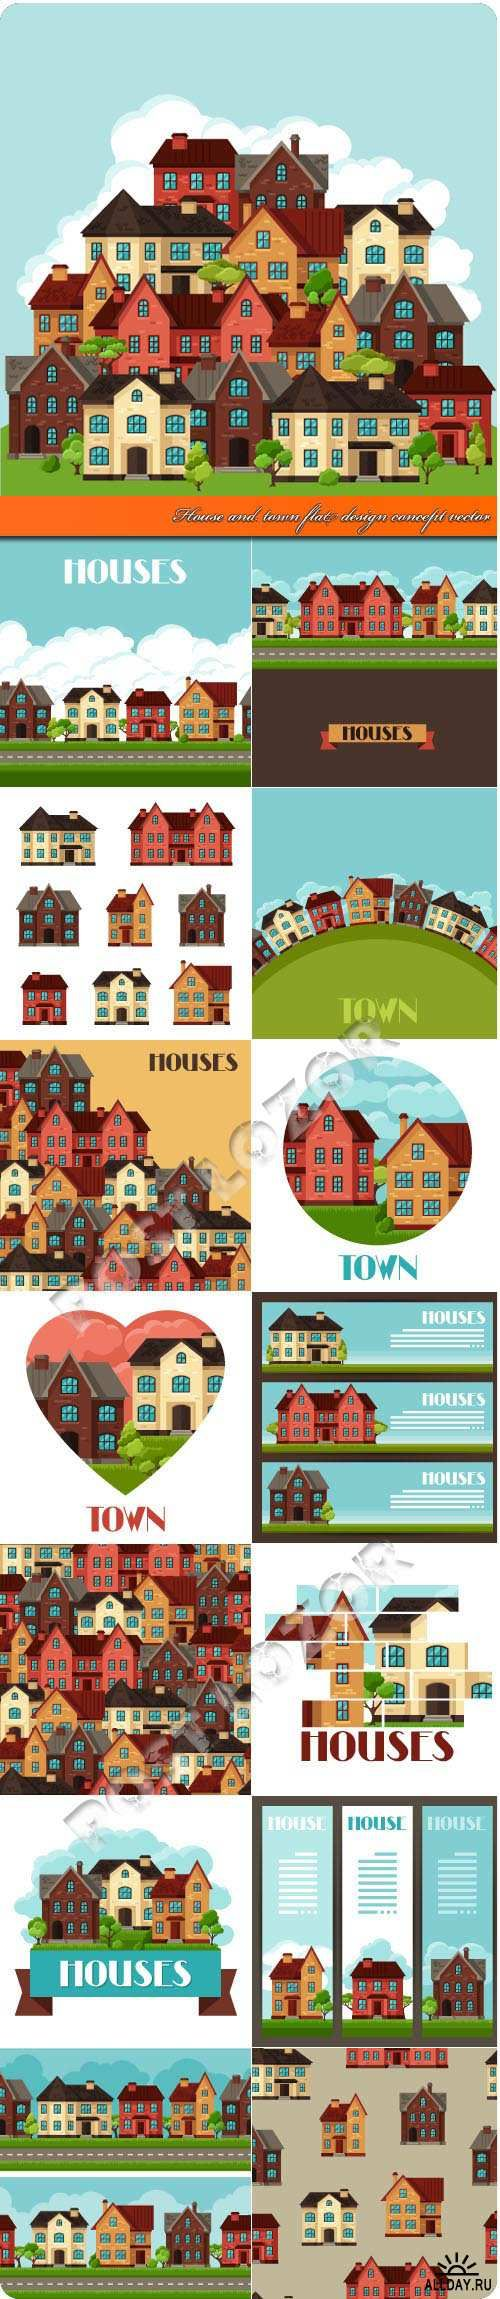 House and town flat design concept vector